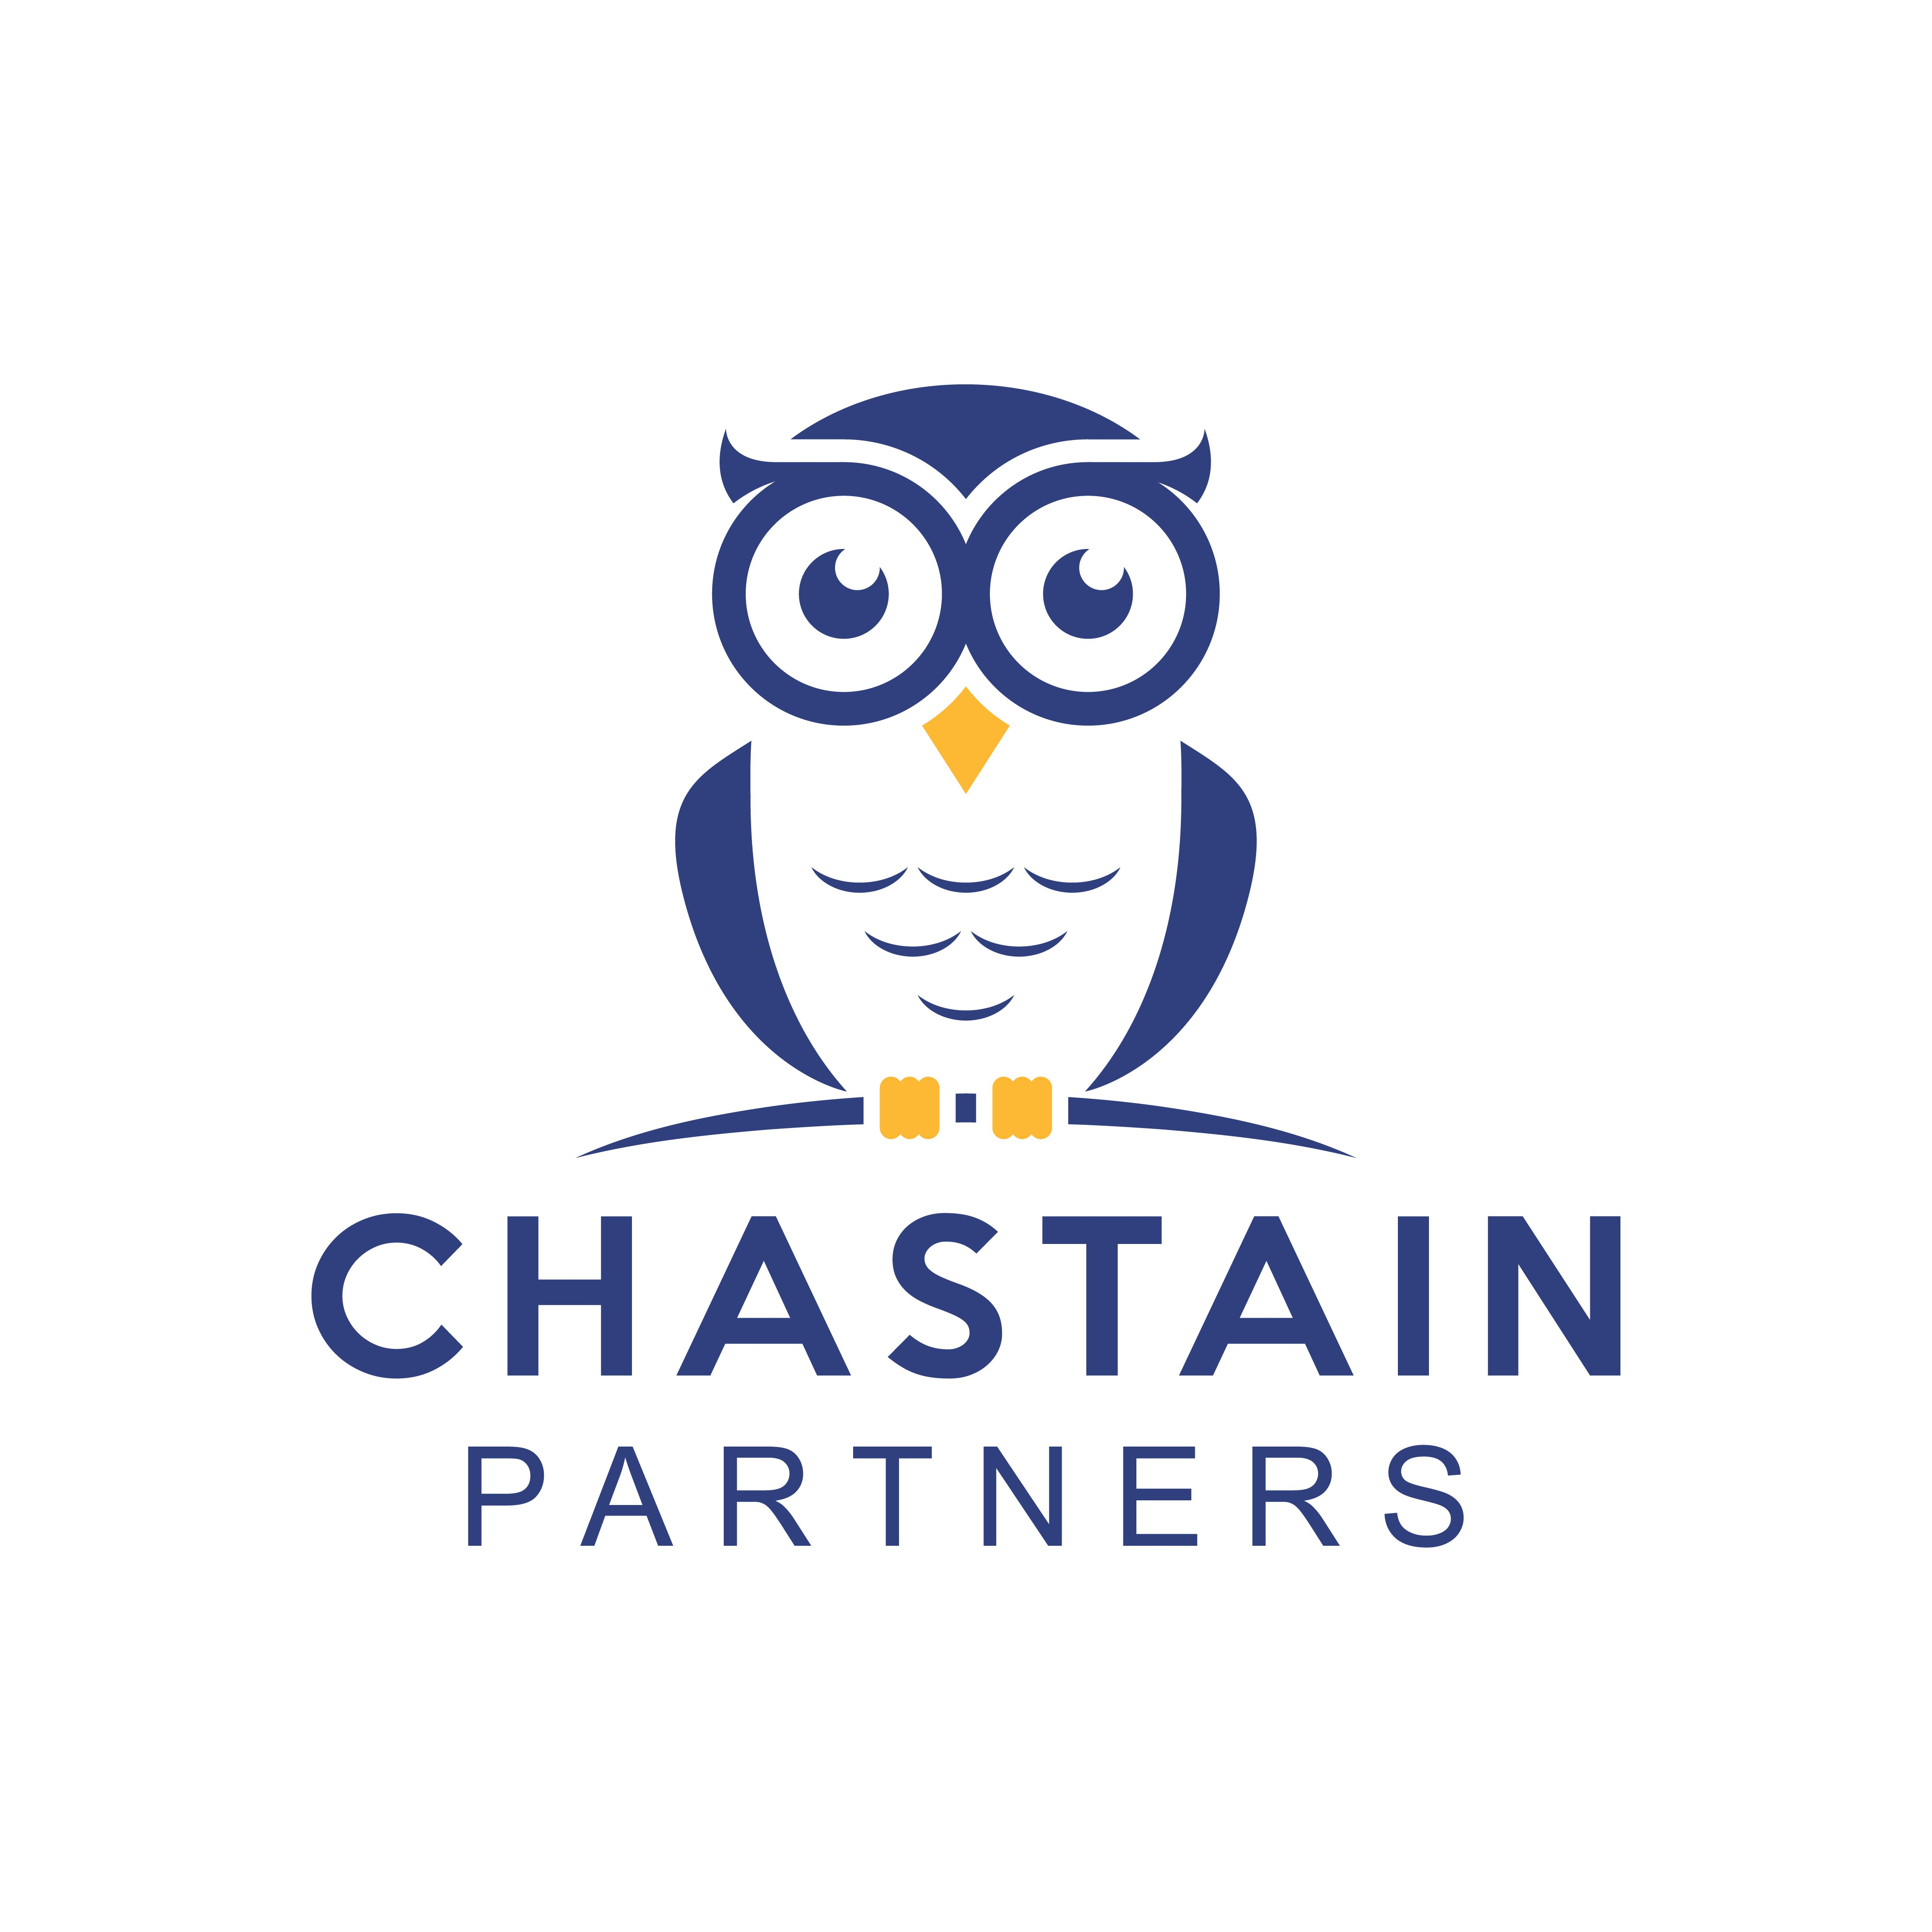 Chastain Partners Accounting, perhaps a fun owl logo?!